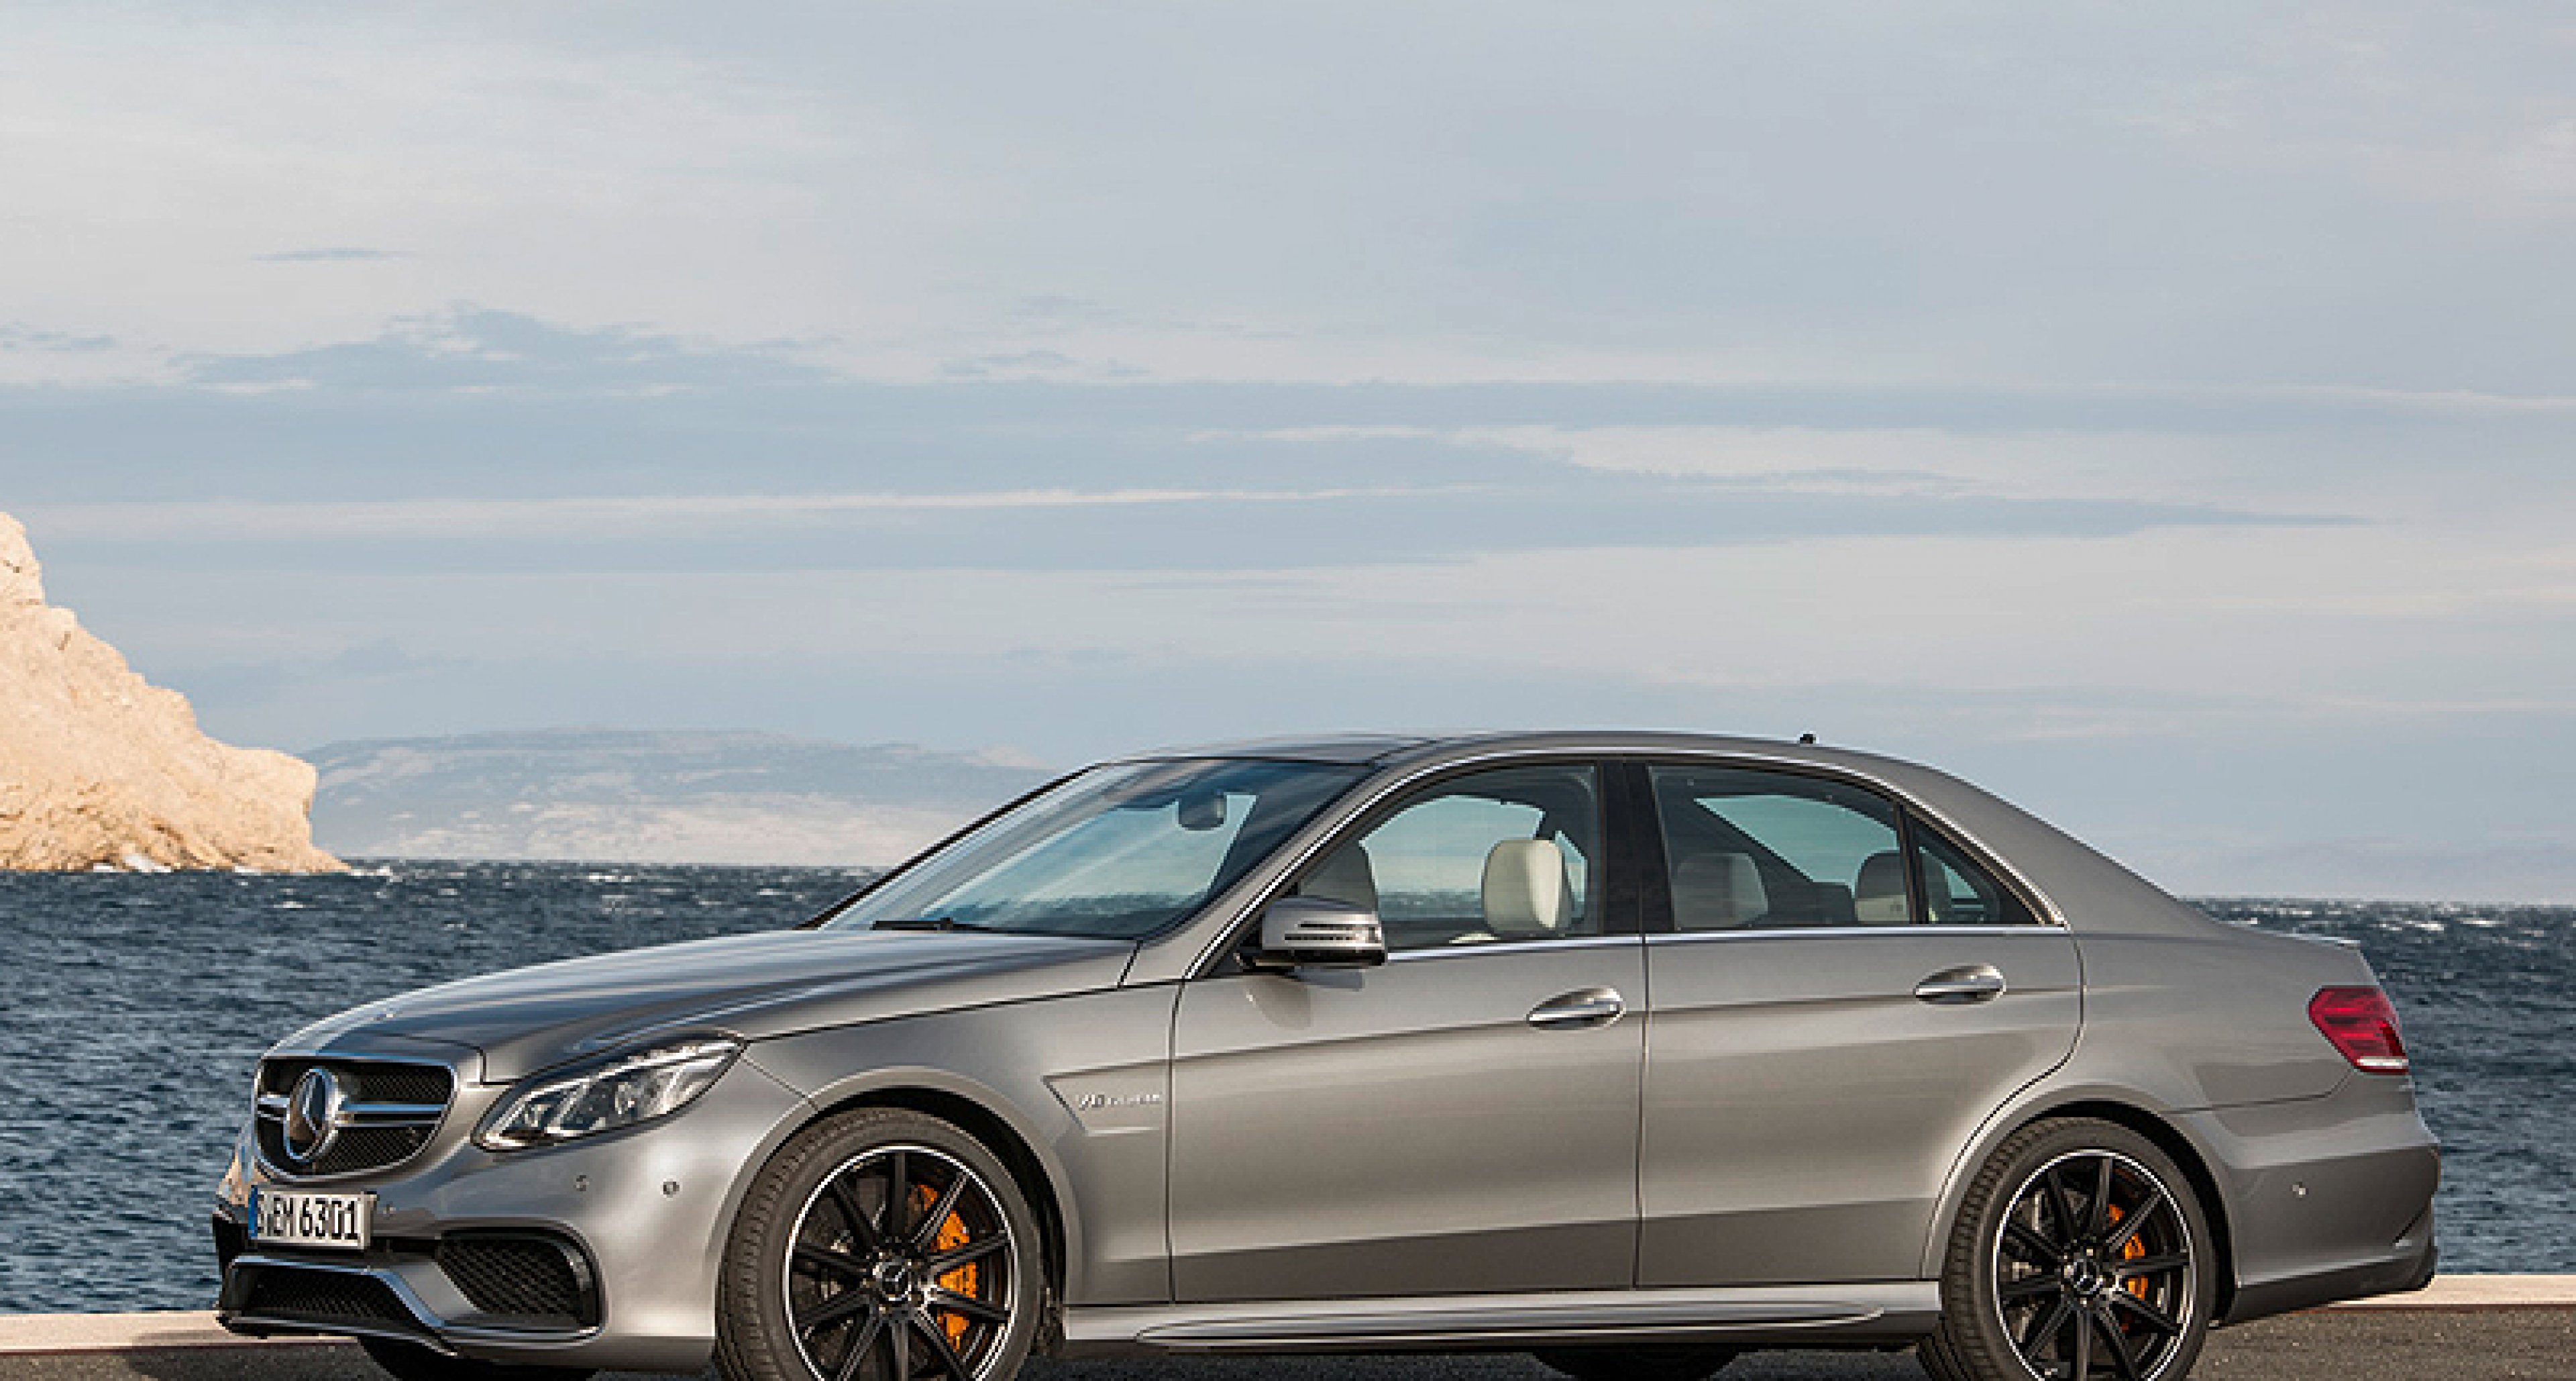 Mercedes-Benz E63 AMG 4Matic S: The 'other Quattro'